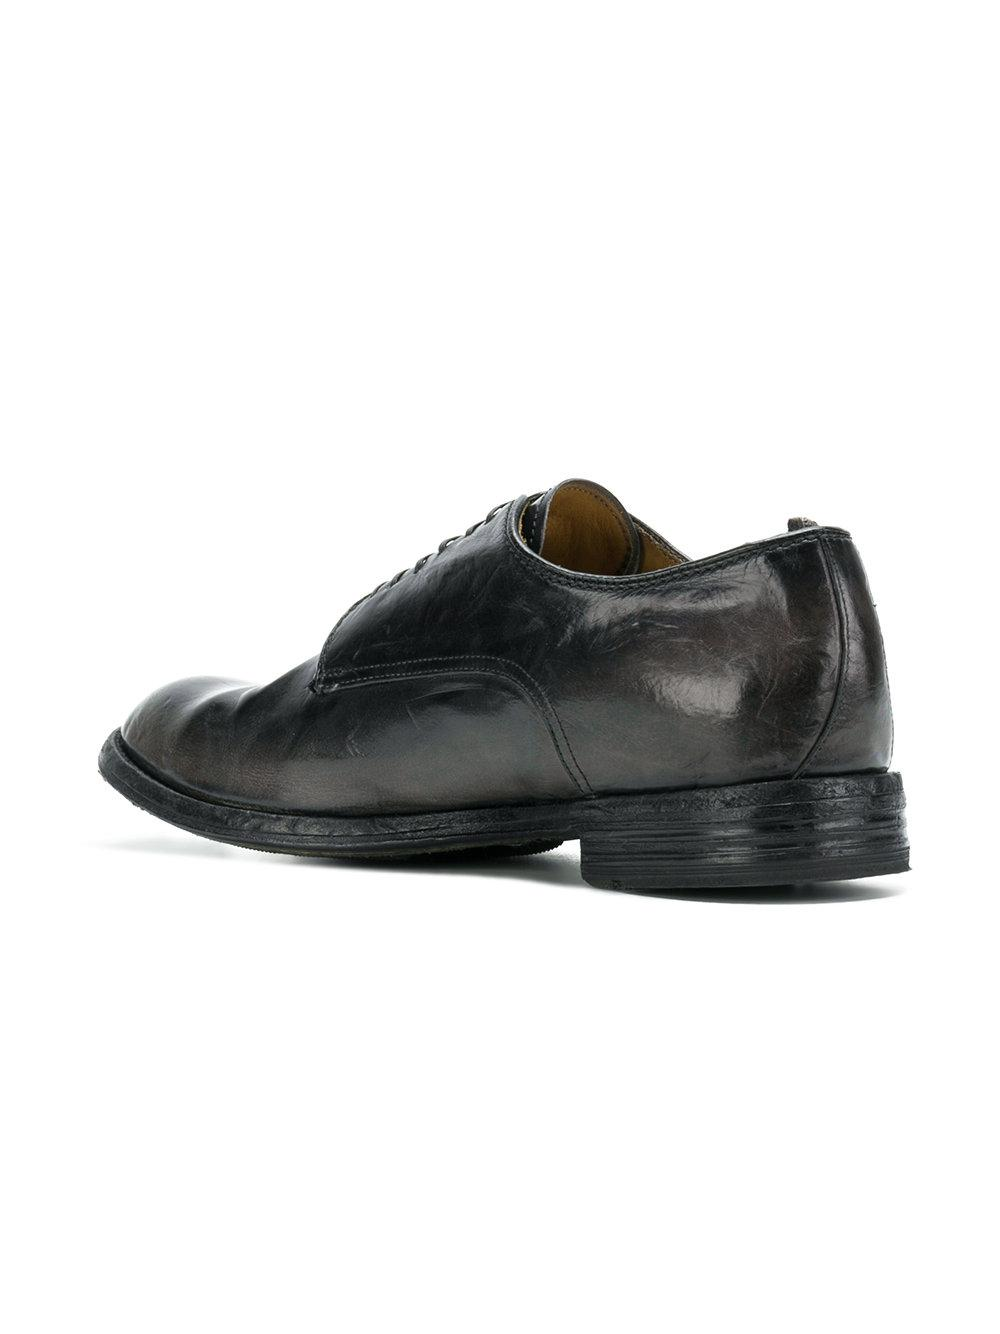 Officine Creative Leather Anatomia Lace-up Shoes in Black for Men